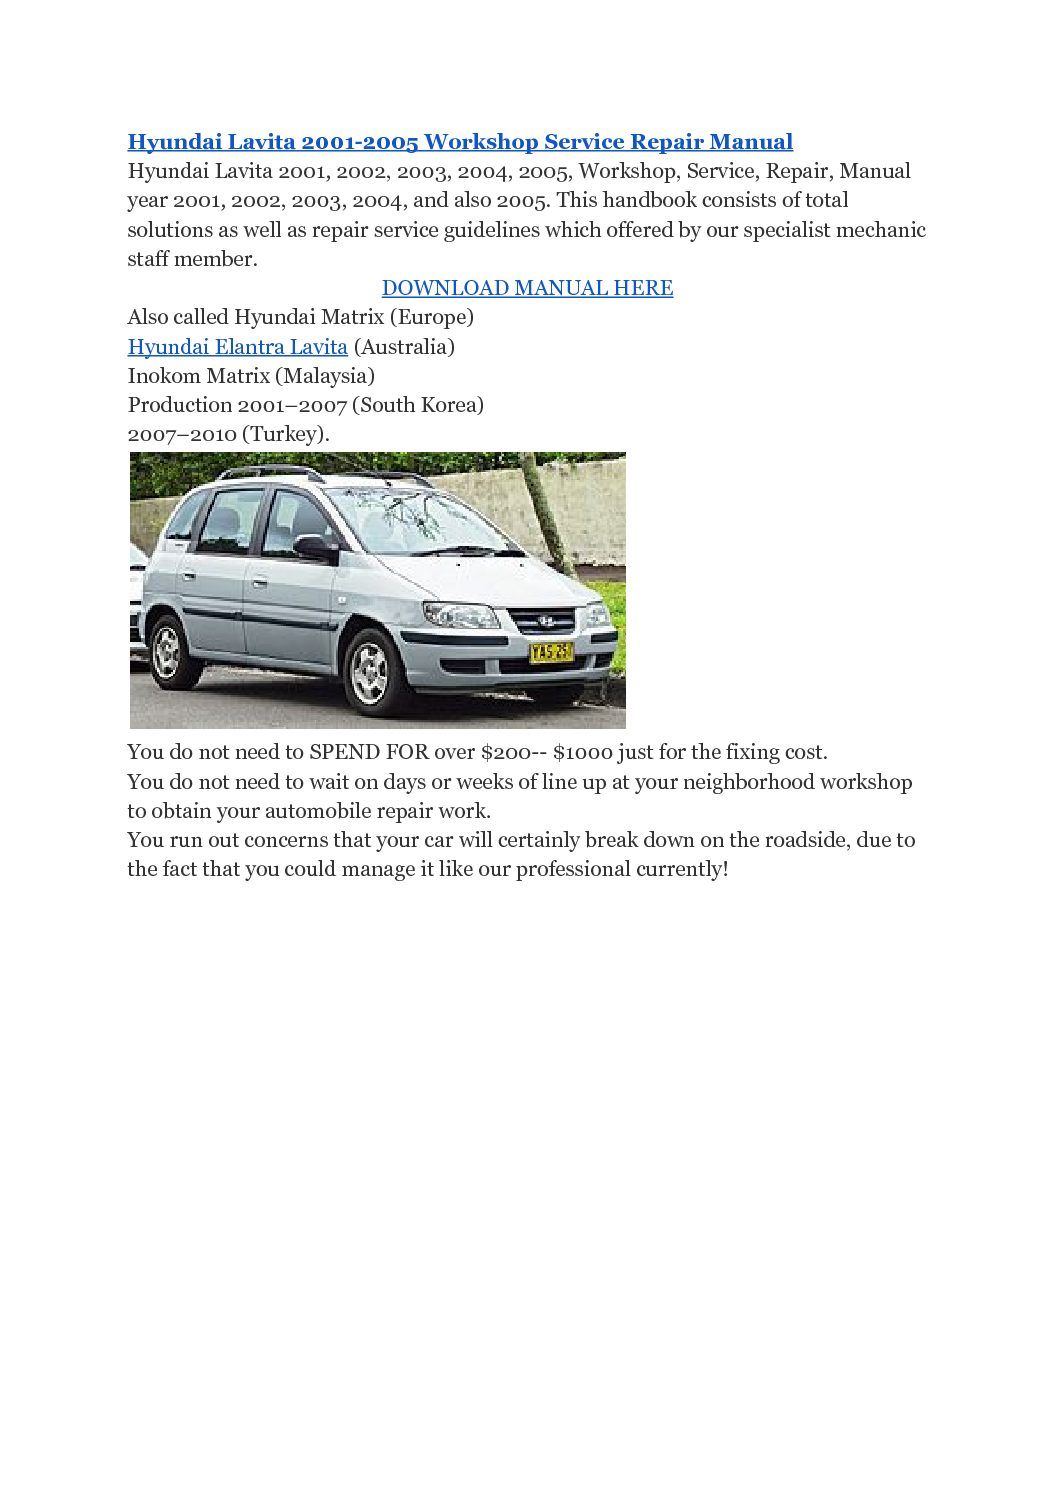 Customer, Hyundai Lavita 2001-2005 Workshop Service Repair Manual ,  http://www.carsmechanicpdf.com/hyundai-lavita-2001-2005-workshop- service-repair-manual/